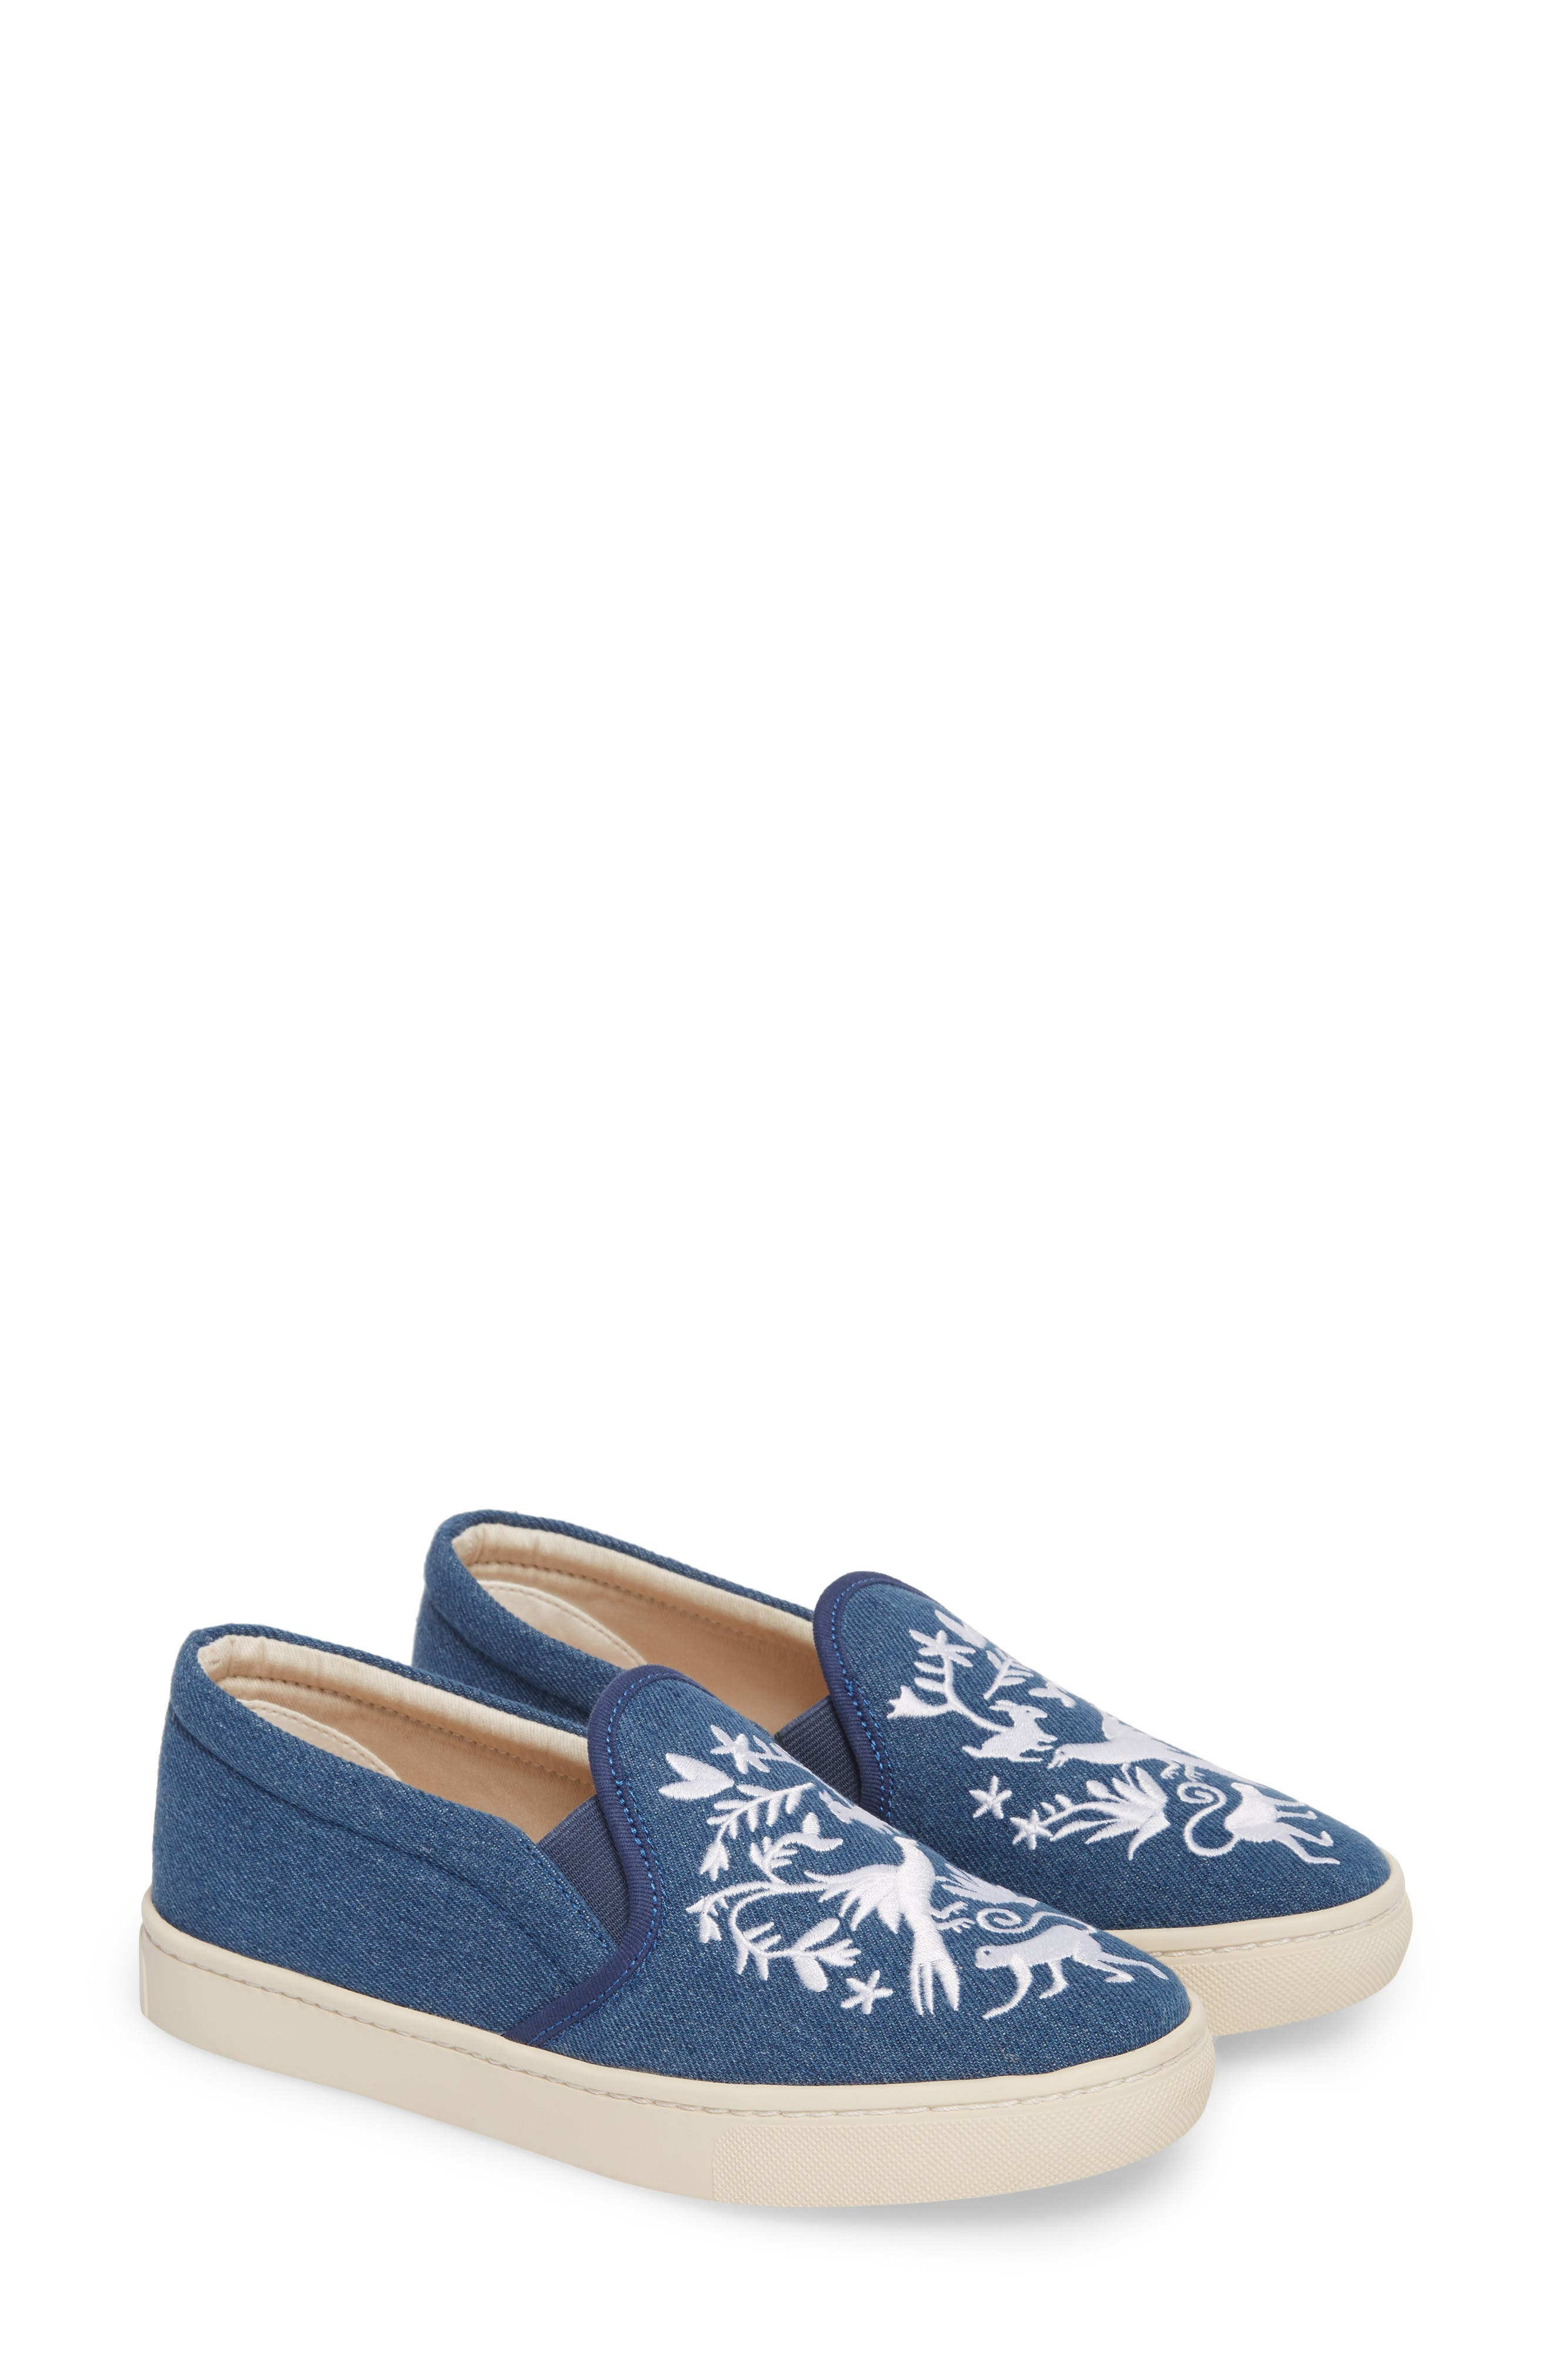 Otomi Slip-On Sneaker,                         Main,                         color, 426